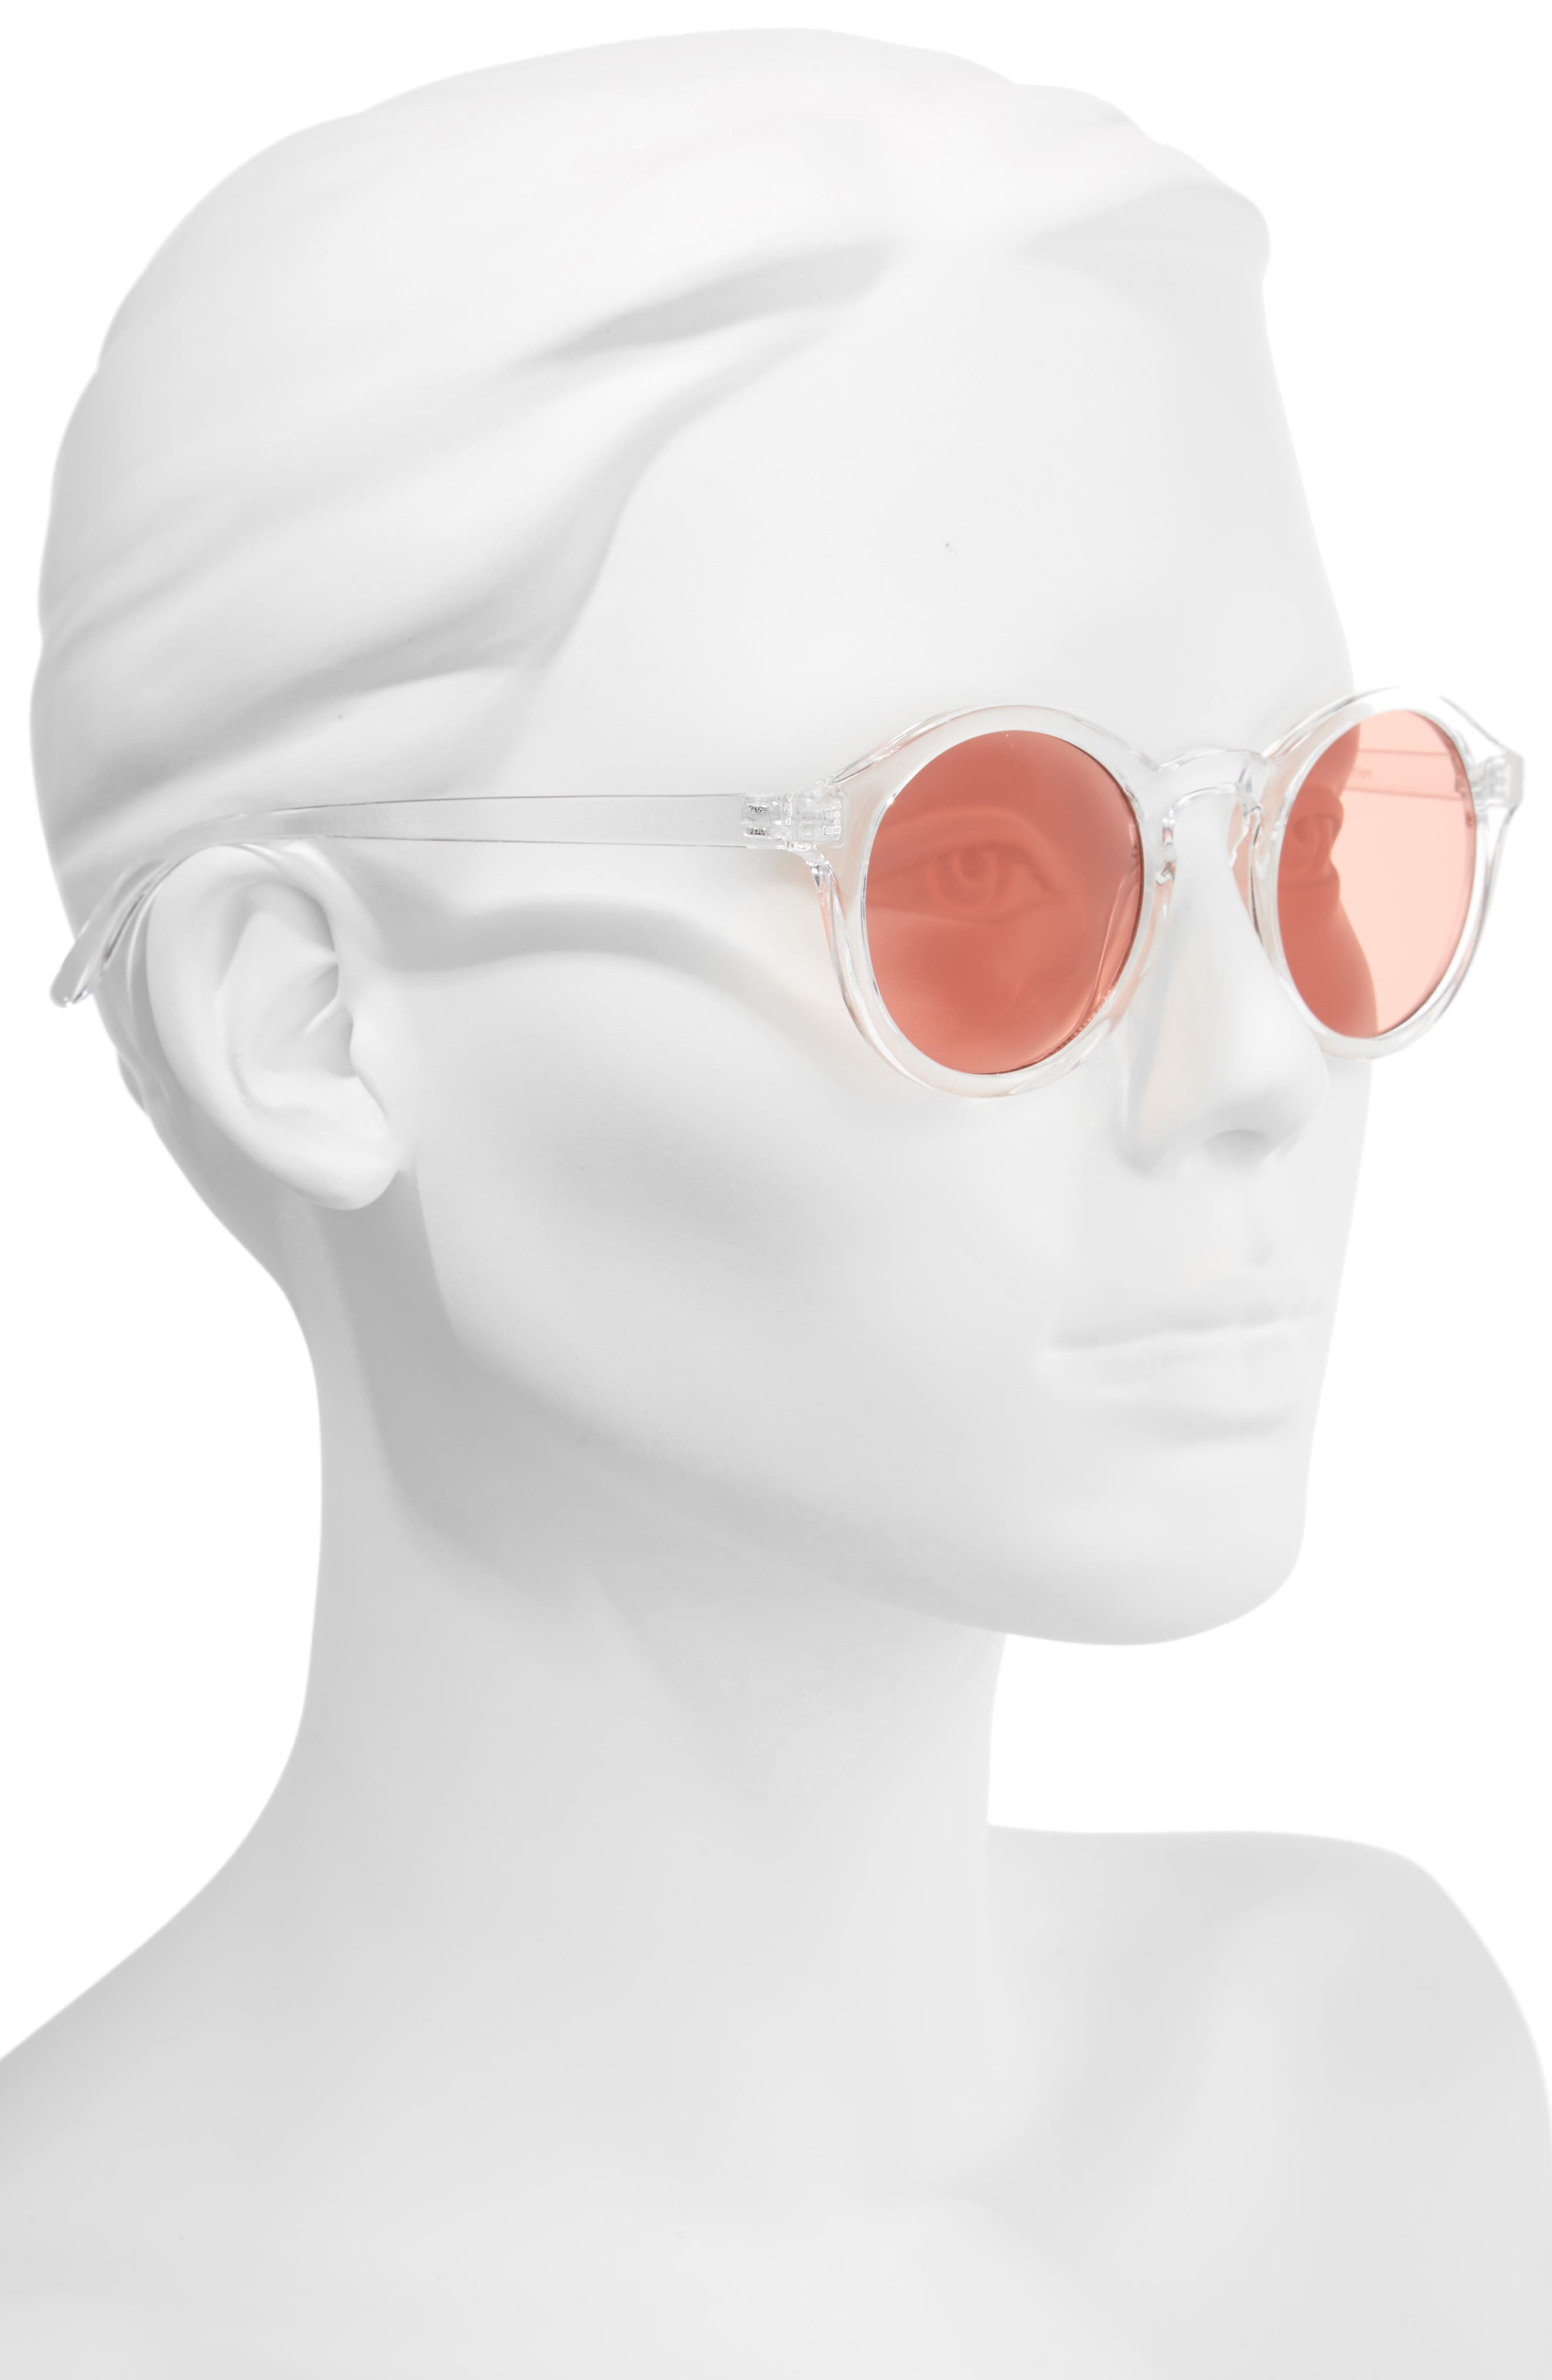 45mm Clear Plastic Small Round Sunglasses,                             Alternate thumbnail 2, color,                             Clear/ Red